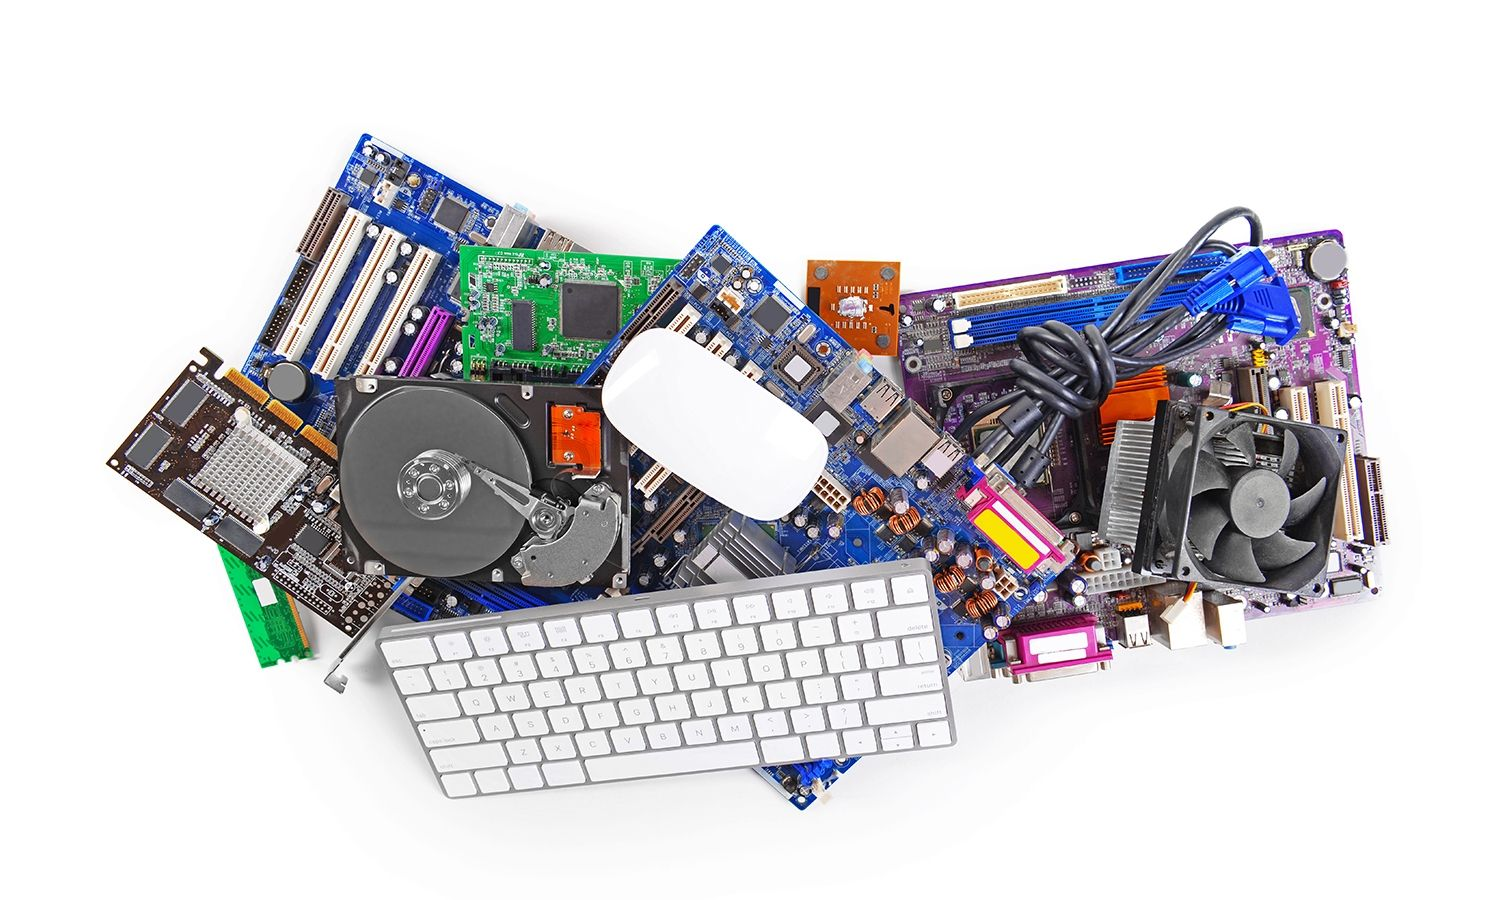 Collection of computer hardware, including a keyboard and mouse